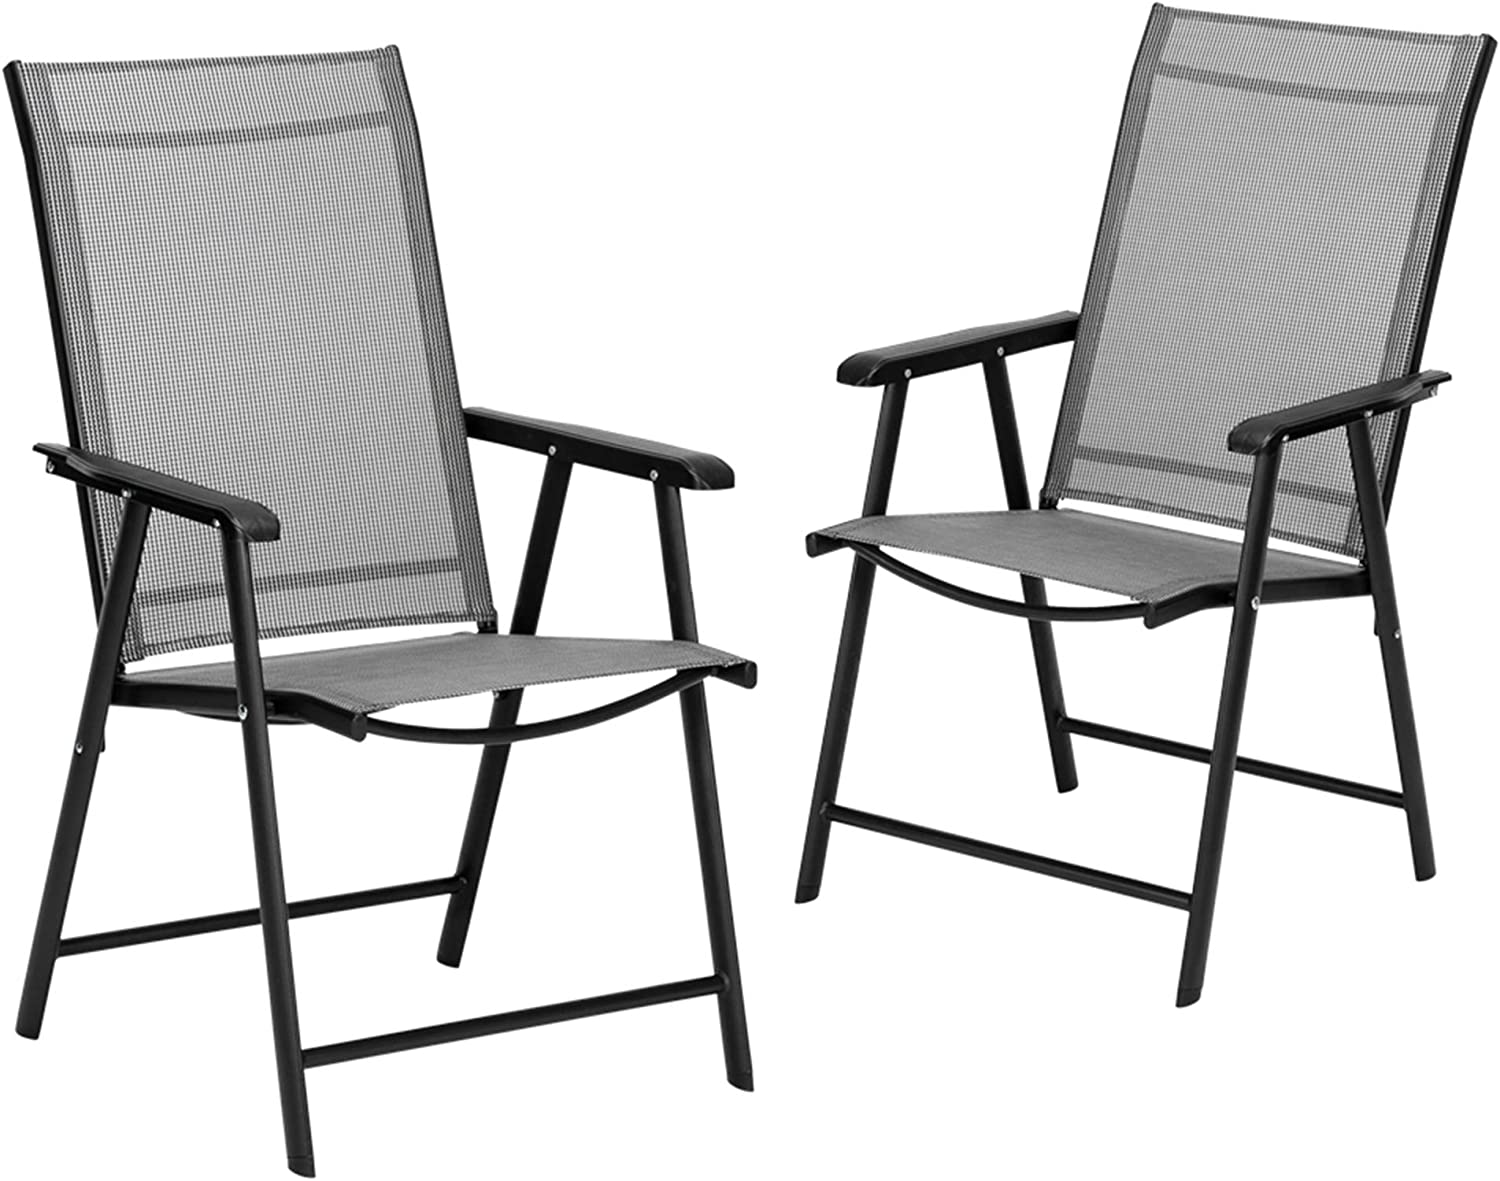 Outdoor Folding Chairs 送料無料 新品 Portable for Adults Beach お見舞い Camping Patio